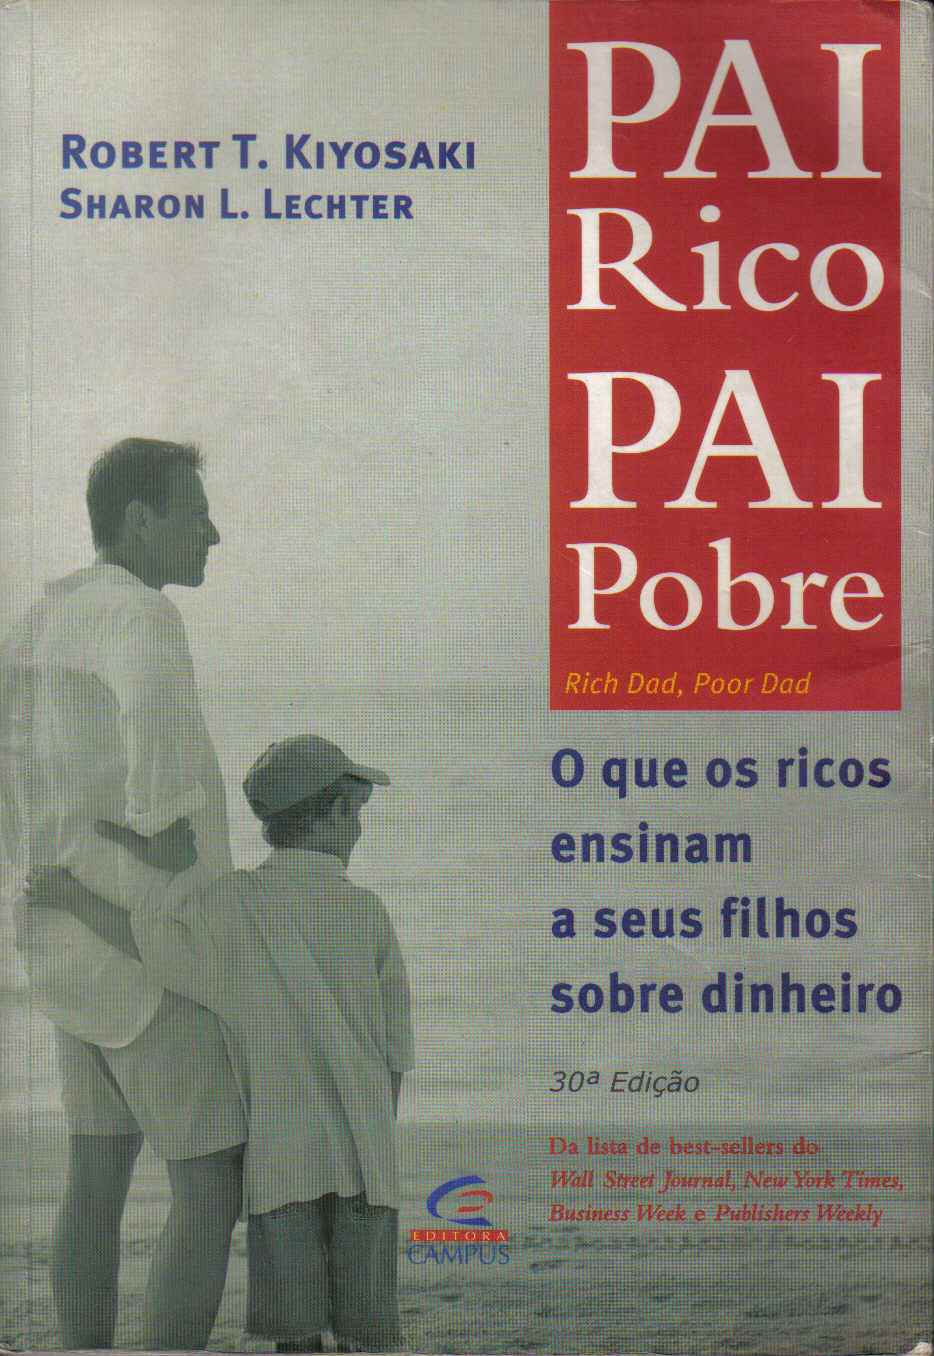 LIVRO DOWNLOAD - PAI RICO, PAI POBRE (ROBERT T. KIYOSAKI